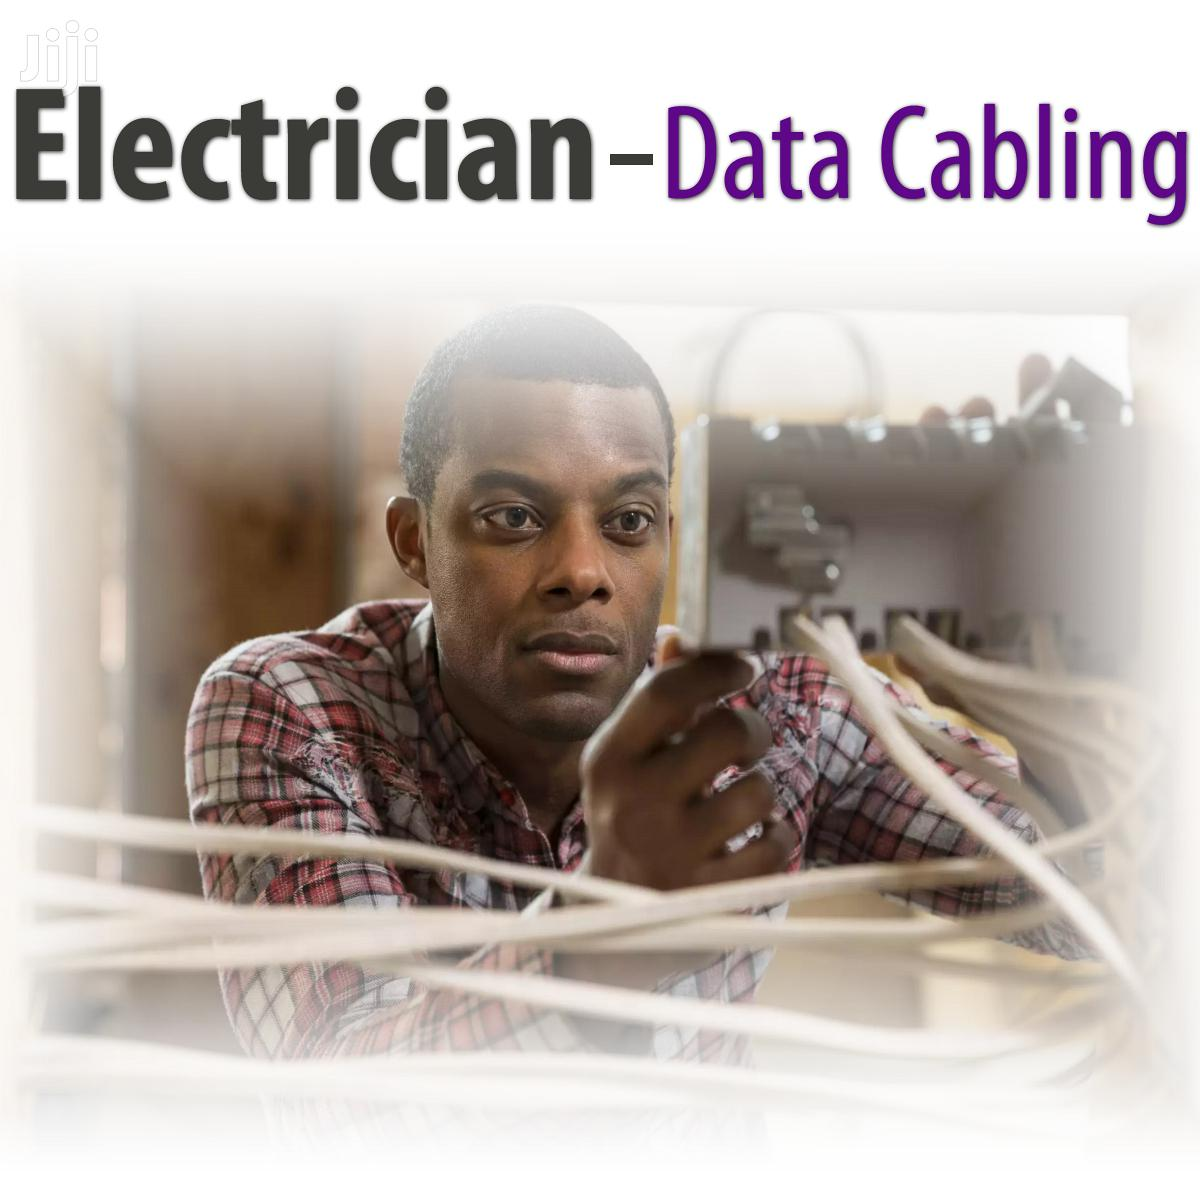 Archive: Electrician With Data Cabling Experience & Basic IT Tech